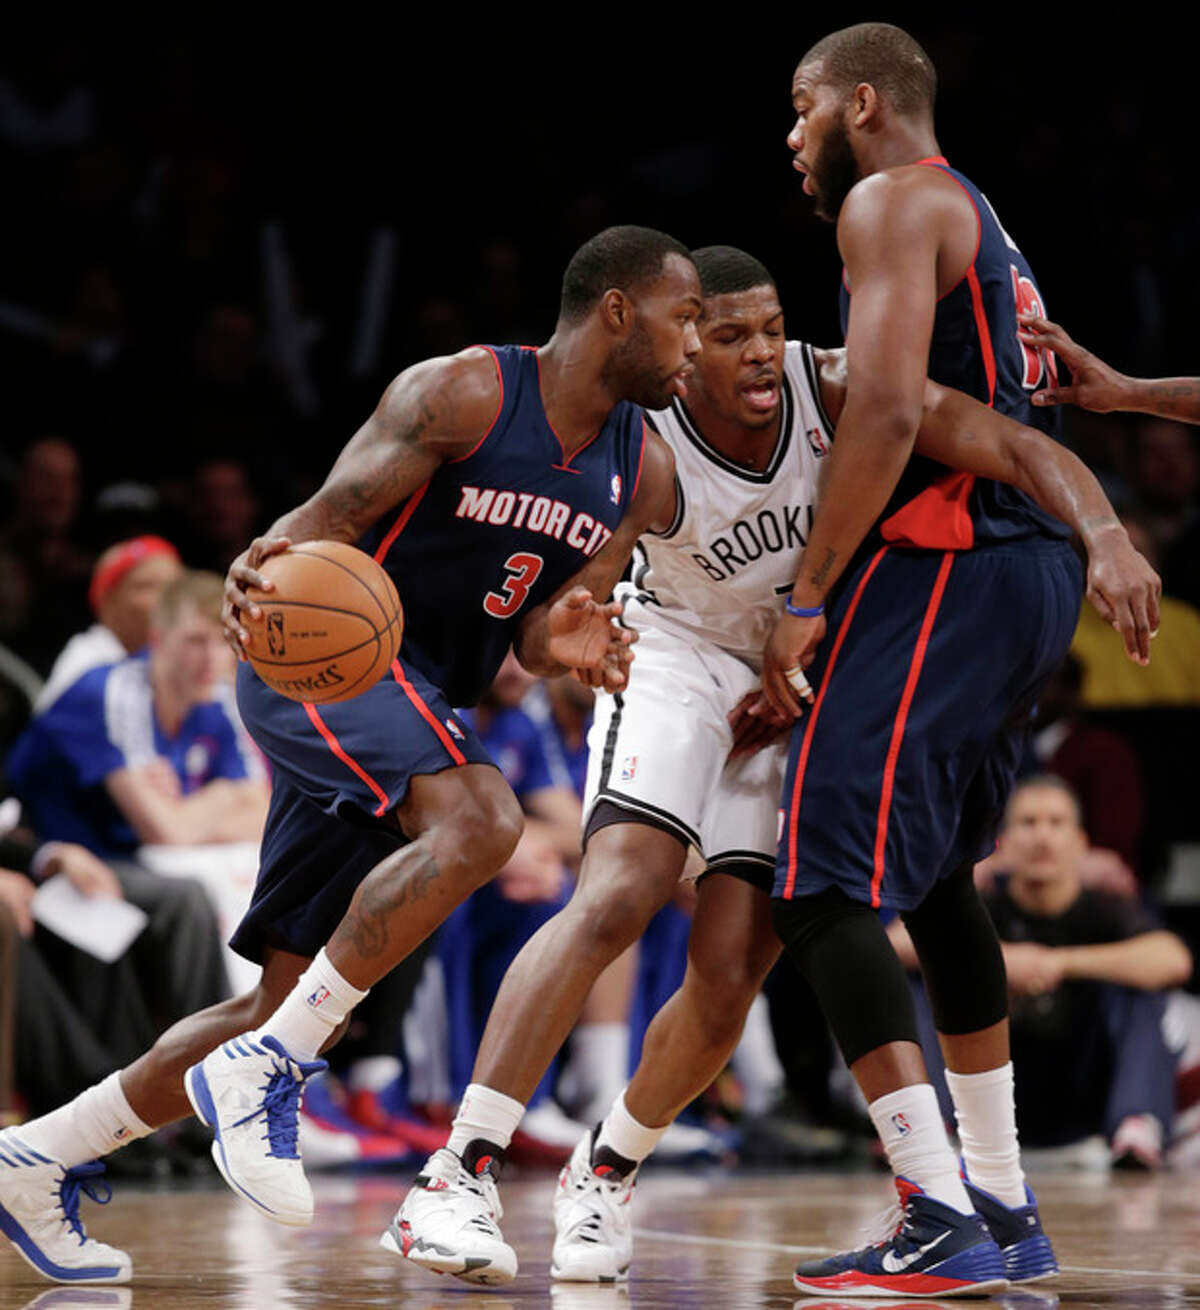 Brooklyn Nets guard Joe Johnson (7) defends as Detroit Pistons guard Rodney Stuckey (3) drives to the basket with Pistons forward Greg Monroe (10) looking on in the first half of an NBA basketball game, Sunday, Nov. 24, 2013, in New York. (AP Photo/Kathy Willens)